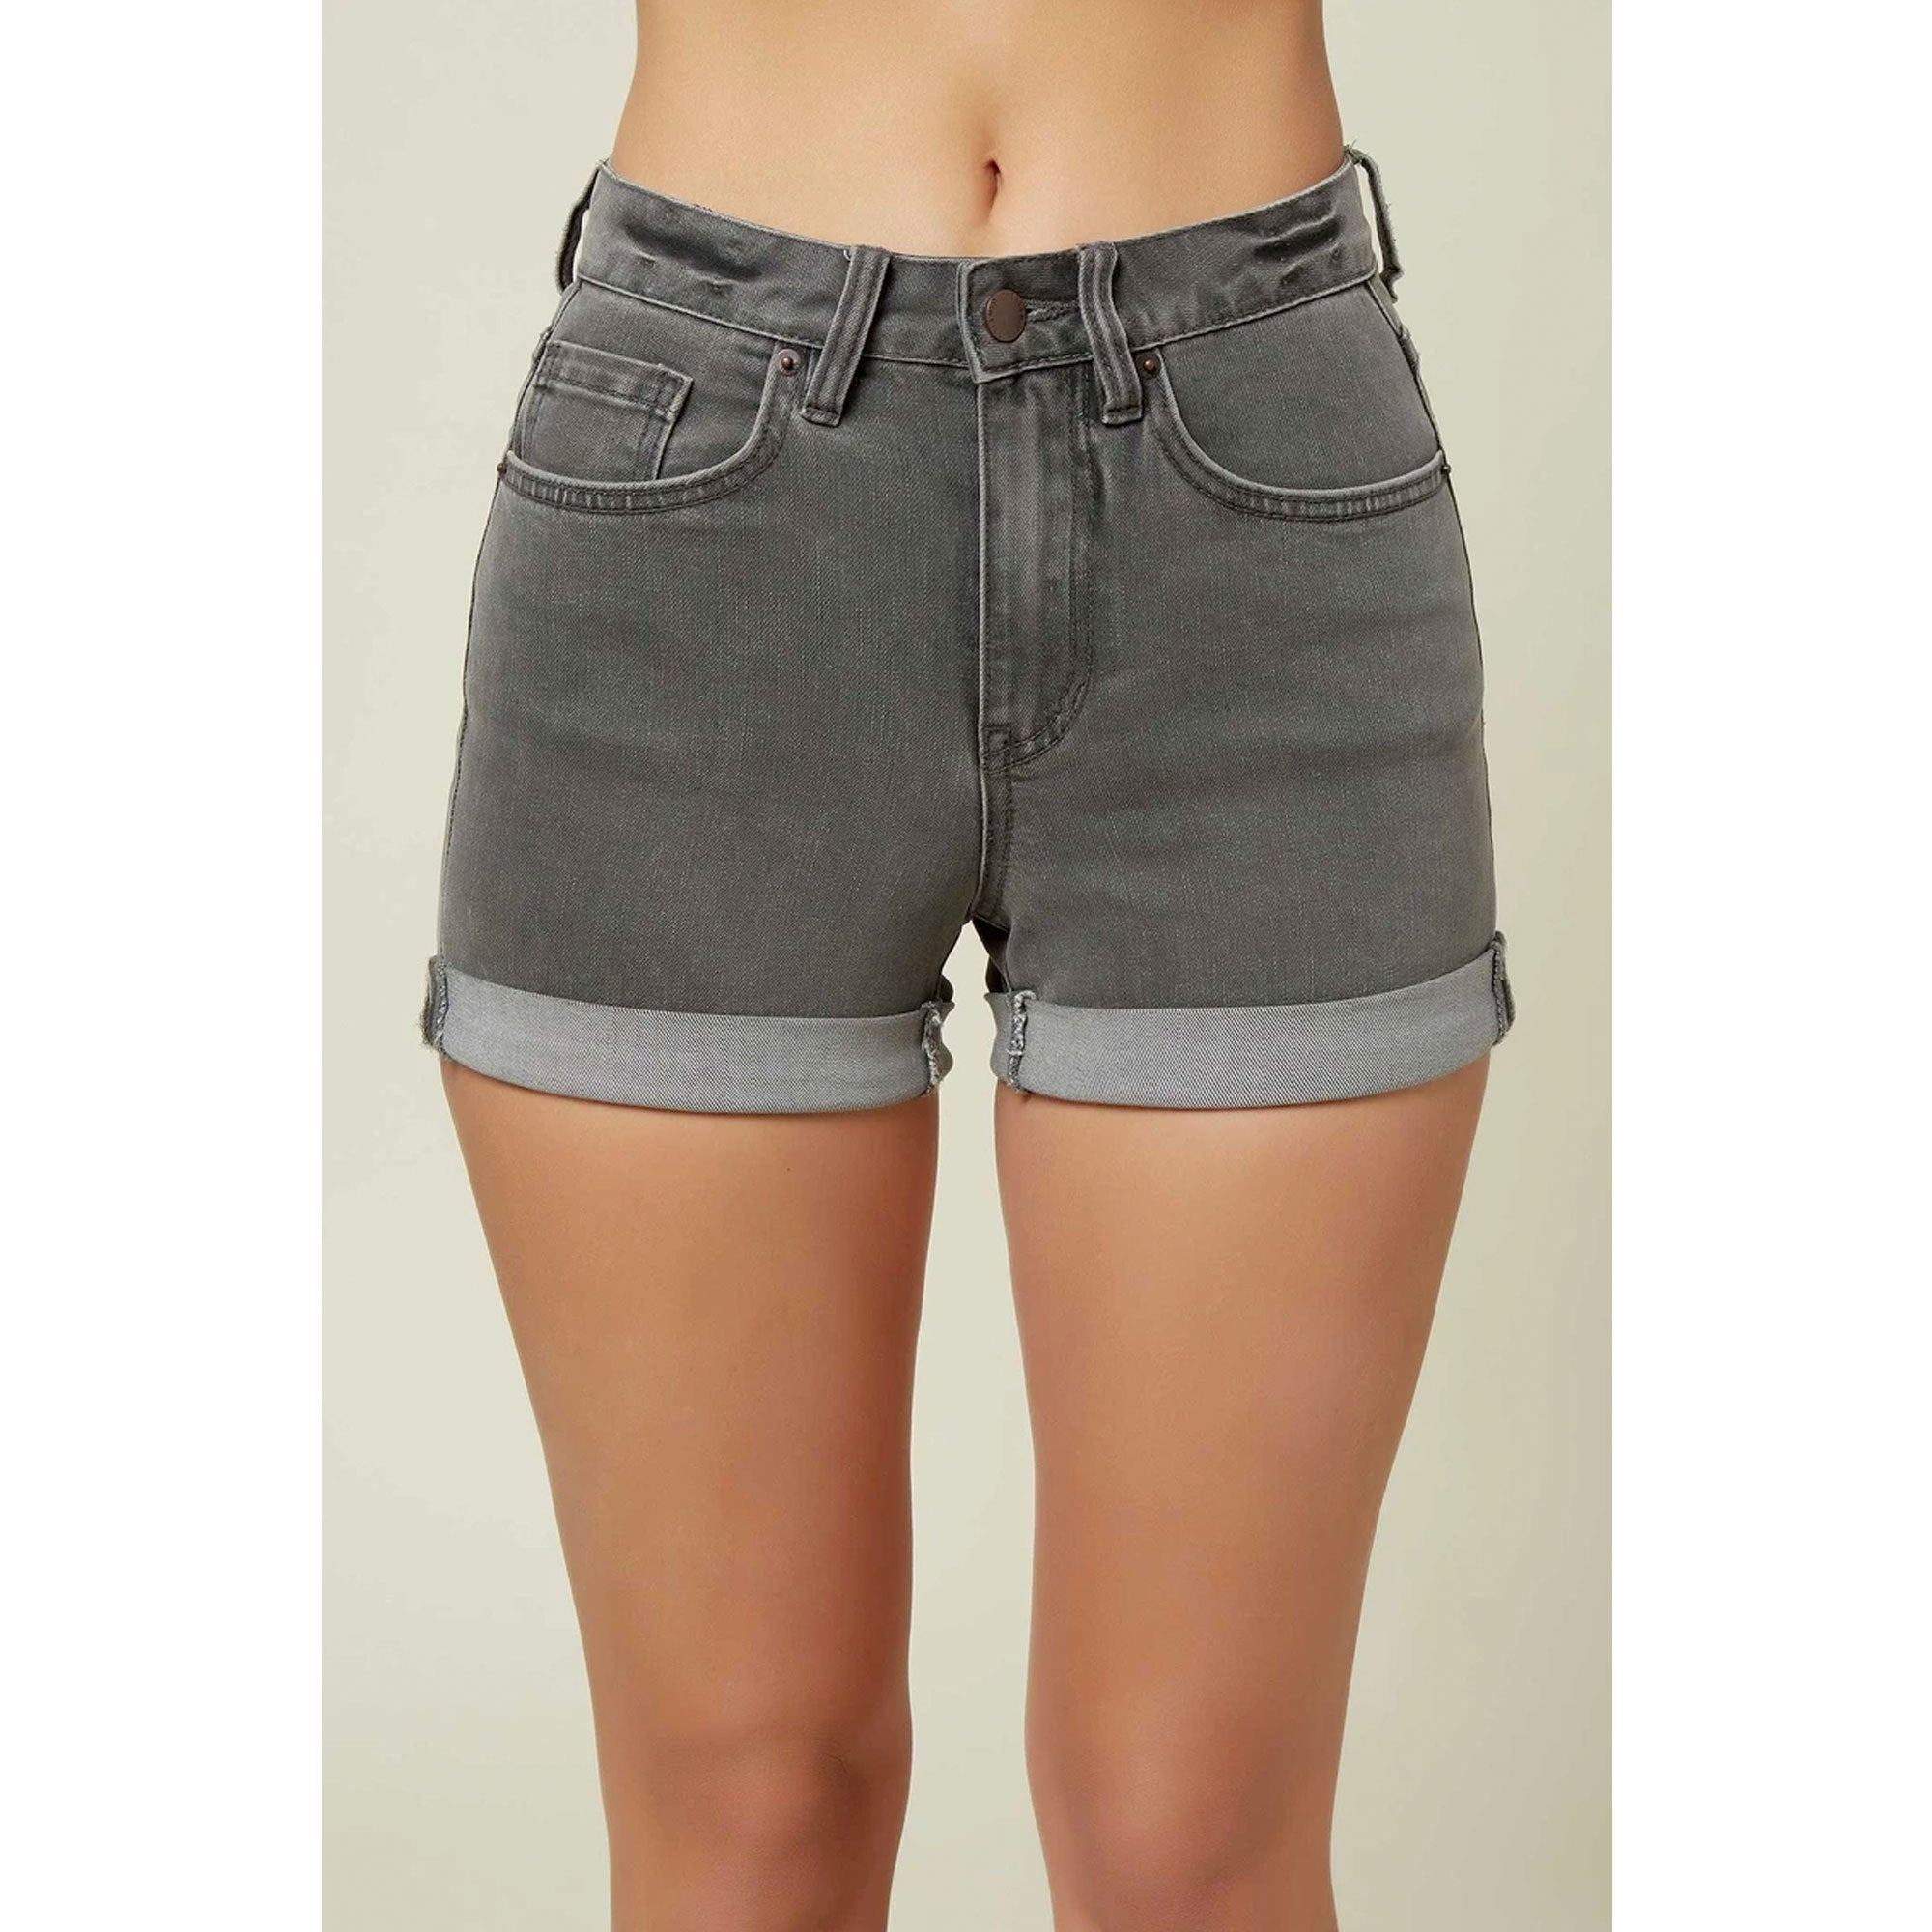 O'Neill Dexter Women's Denim Shorts